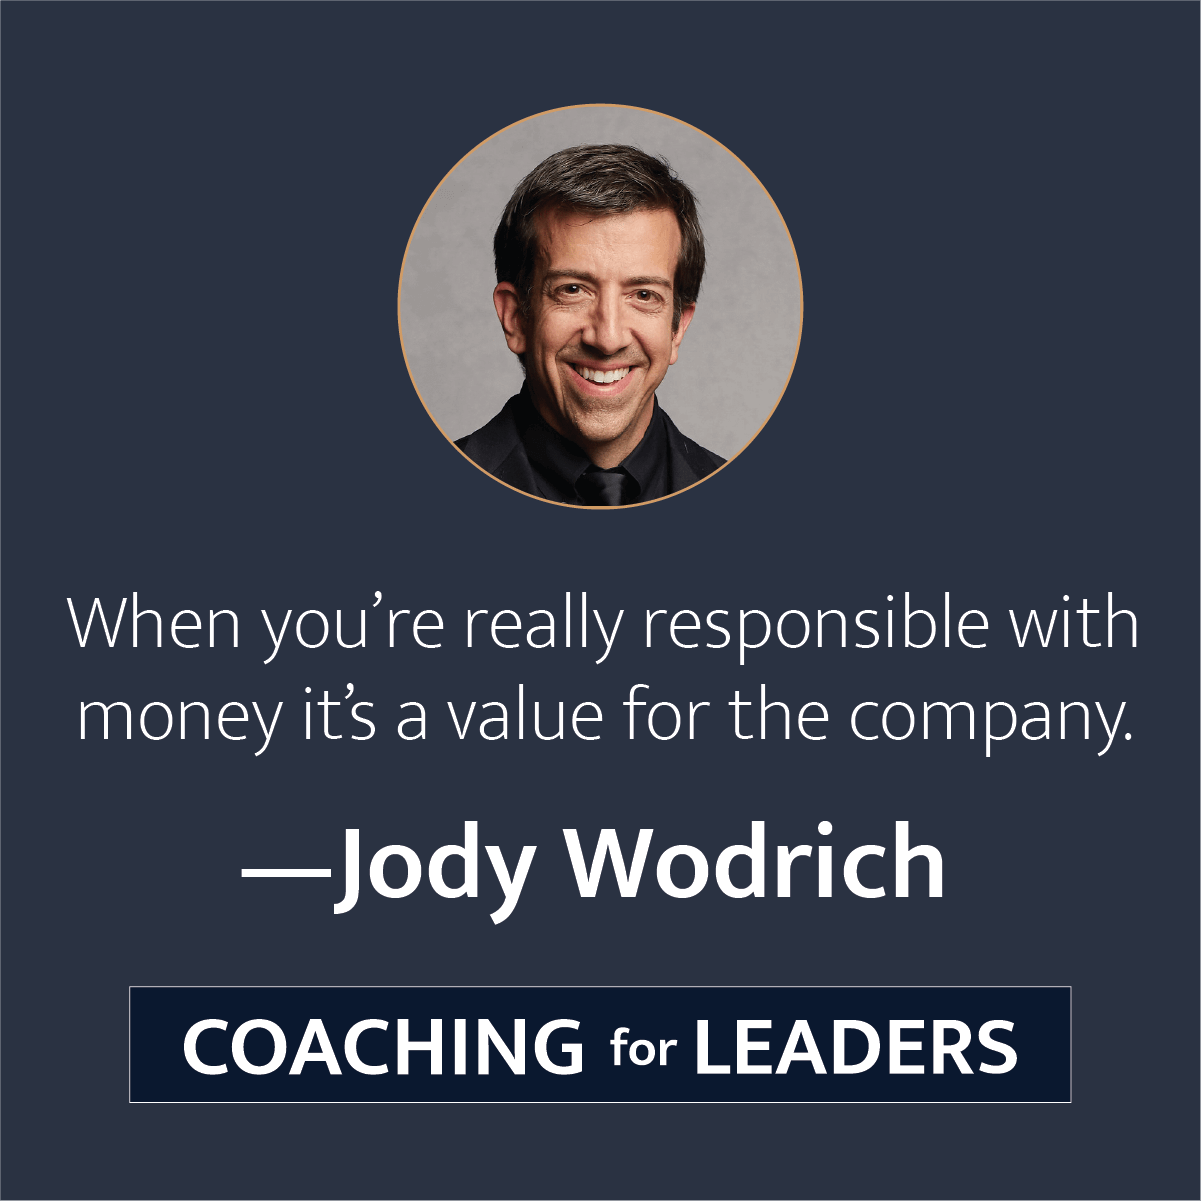 When you're really responsible with money it's a value for the company.